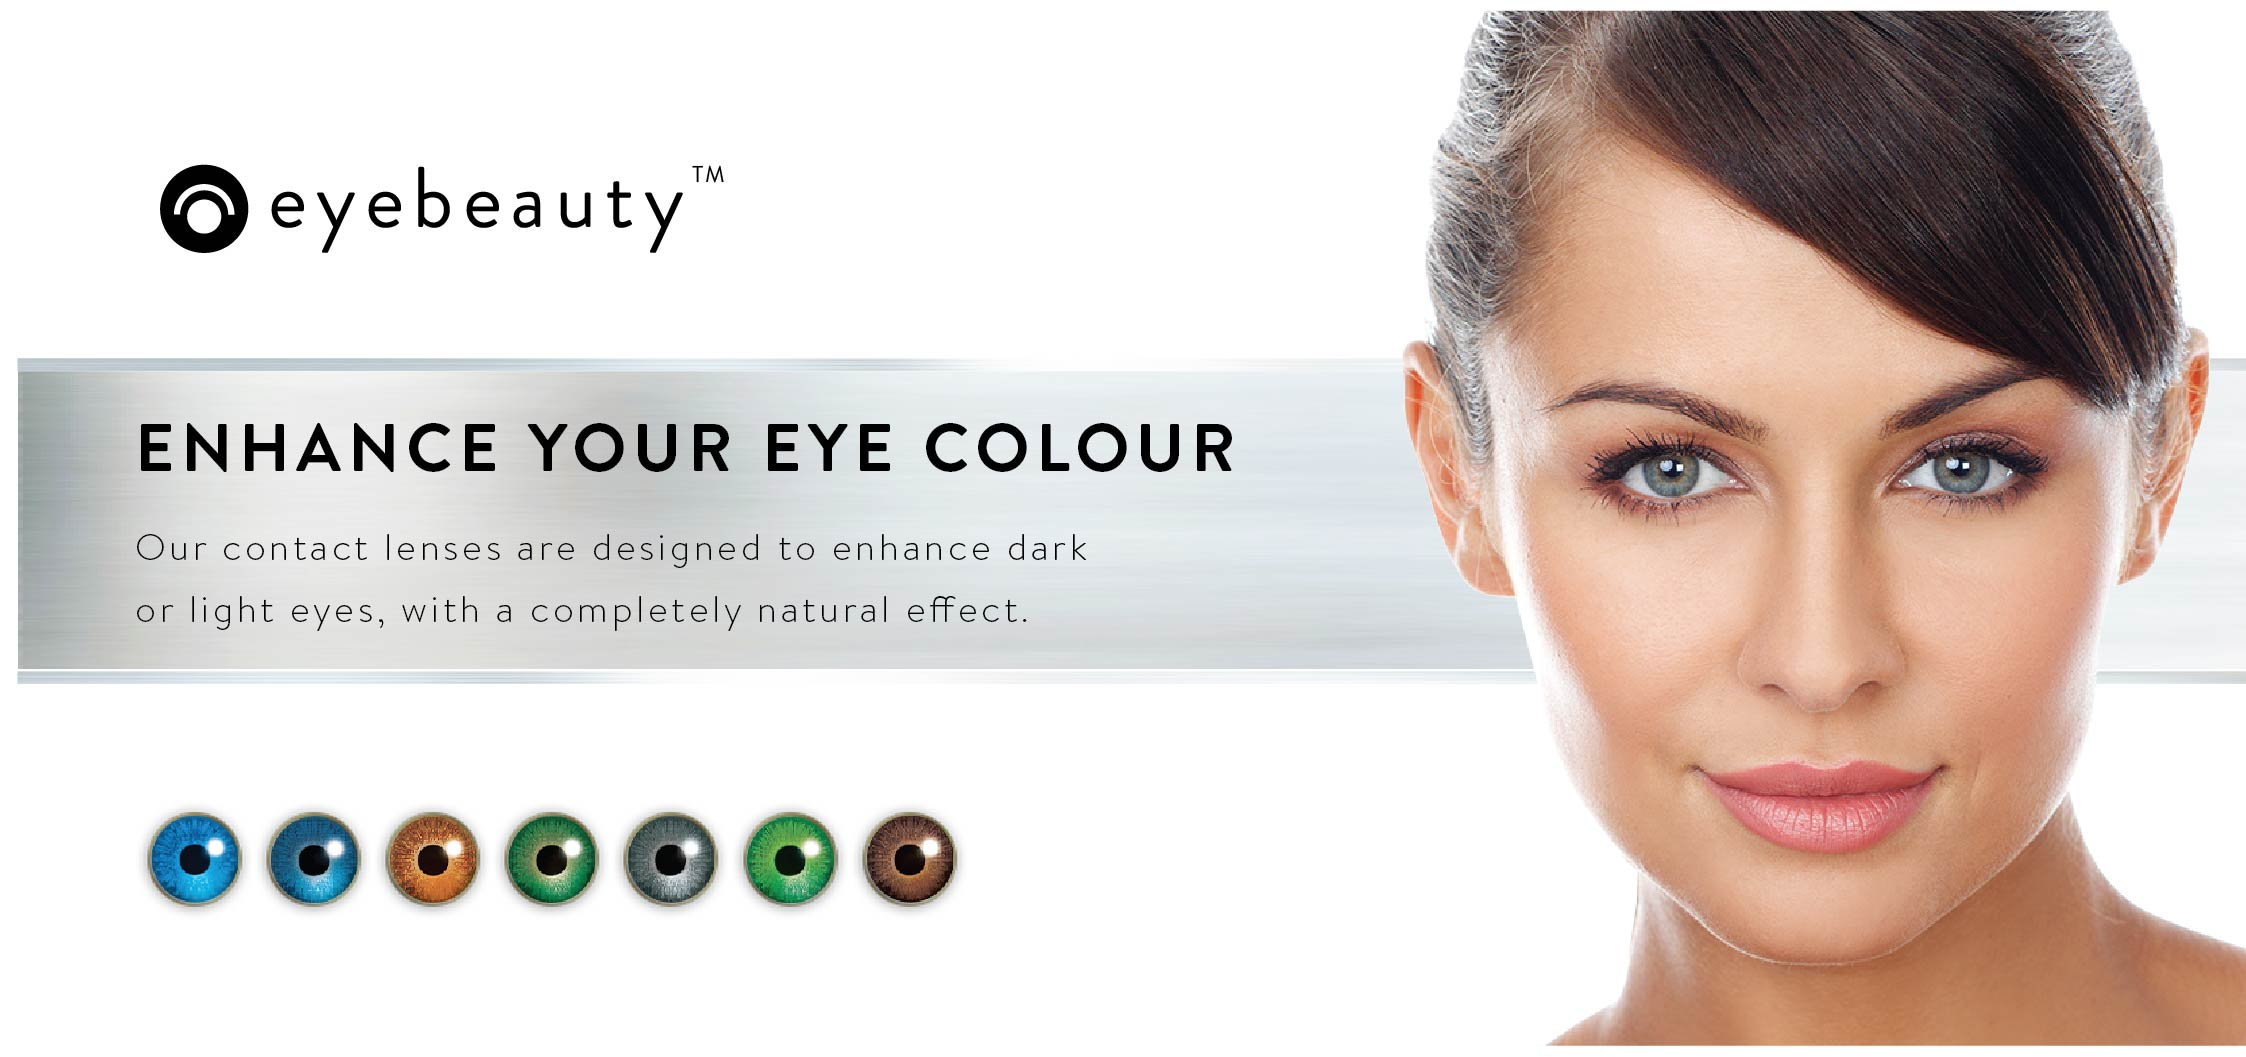 page-coloured-contact-lenses-header.jpg